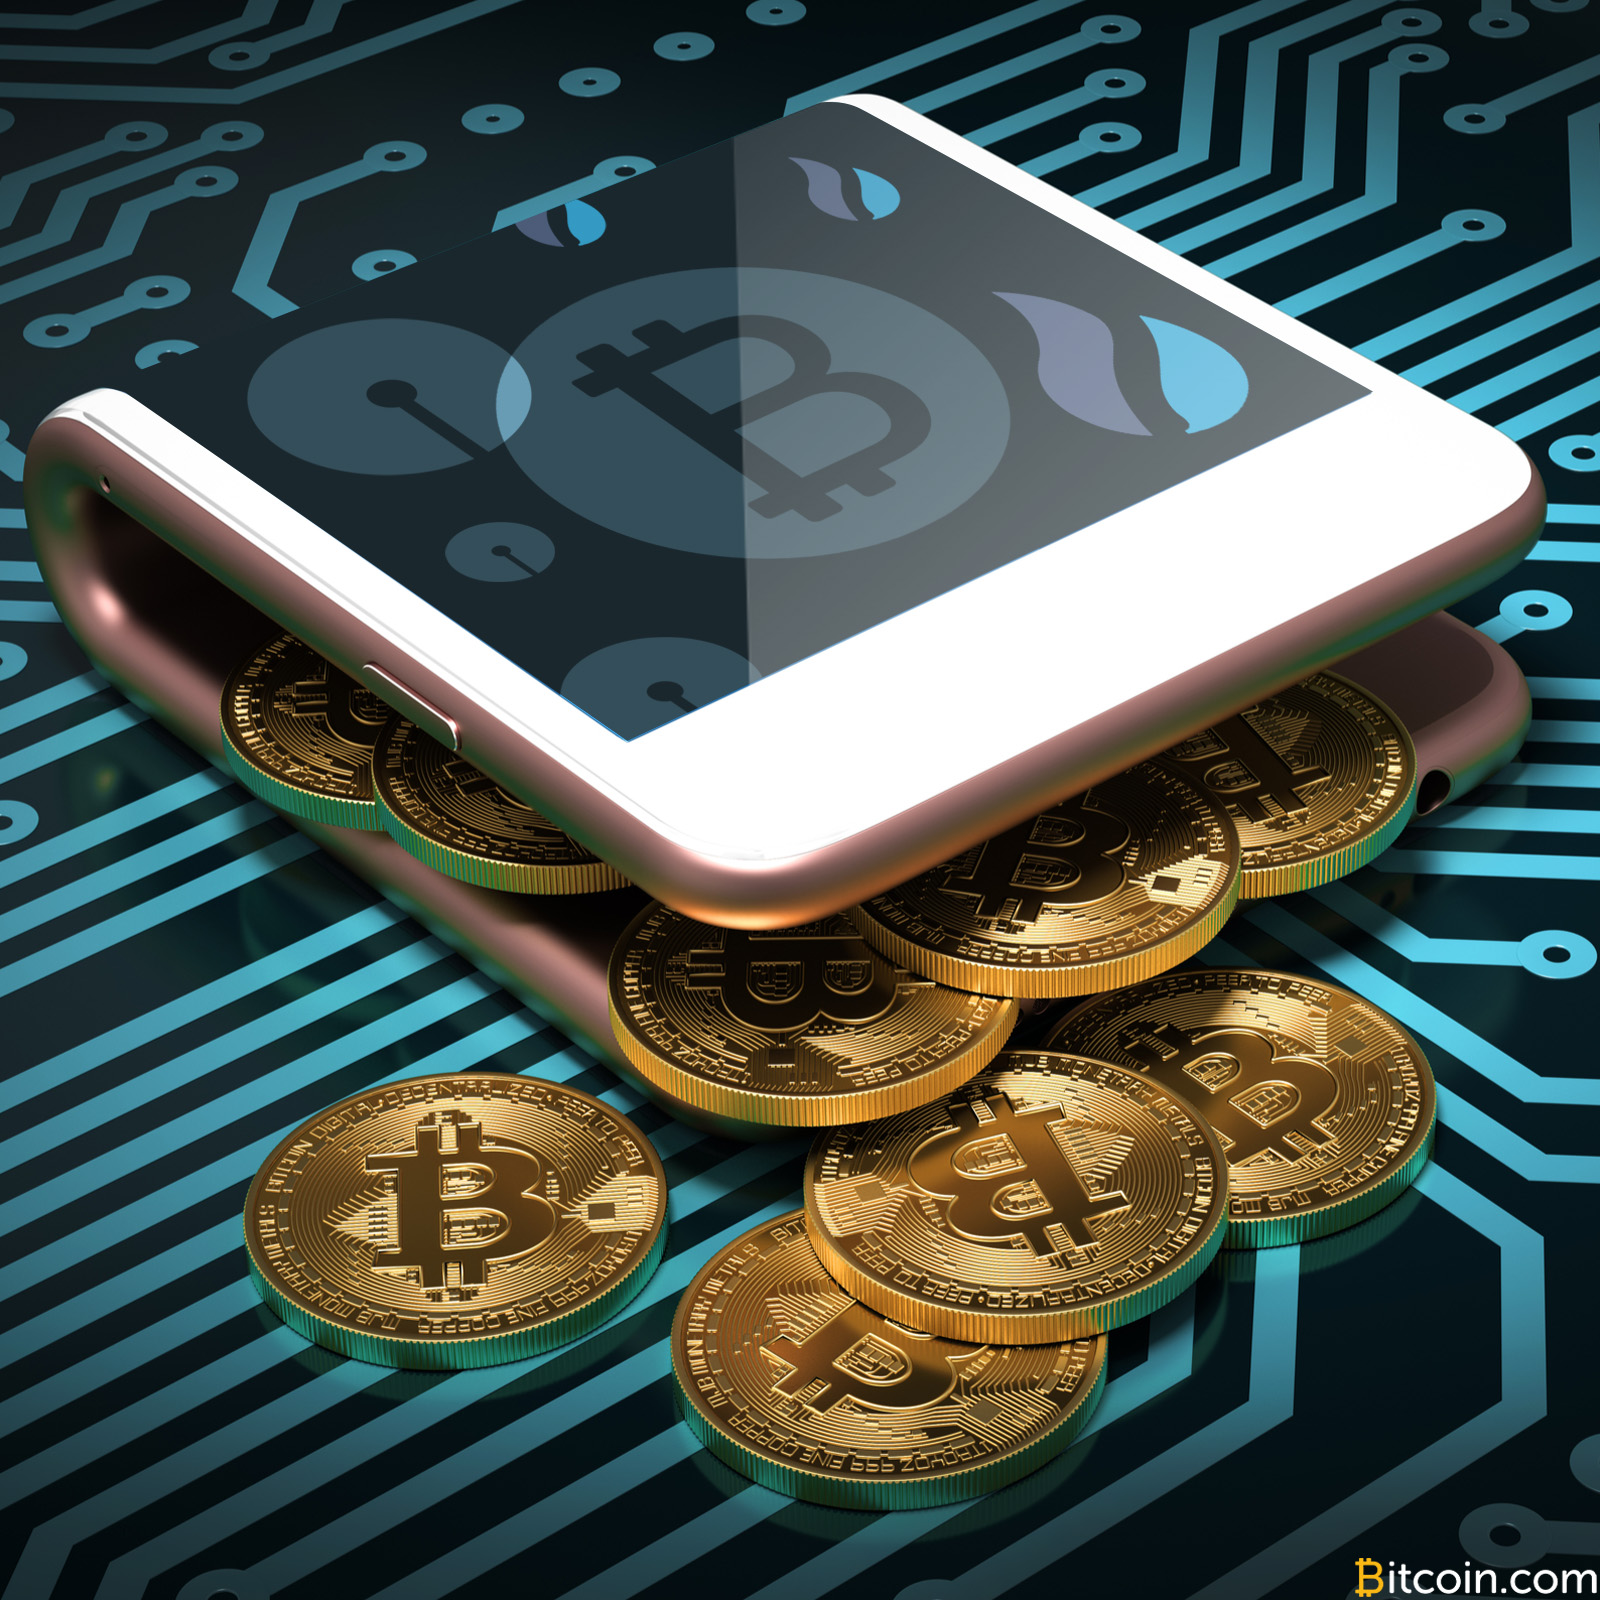 Exchanges Roundup: SBI to Develop Wallet, Huobi Targets New Markets